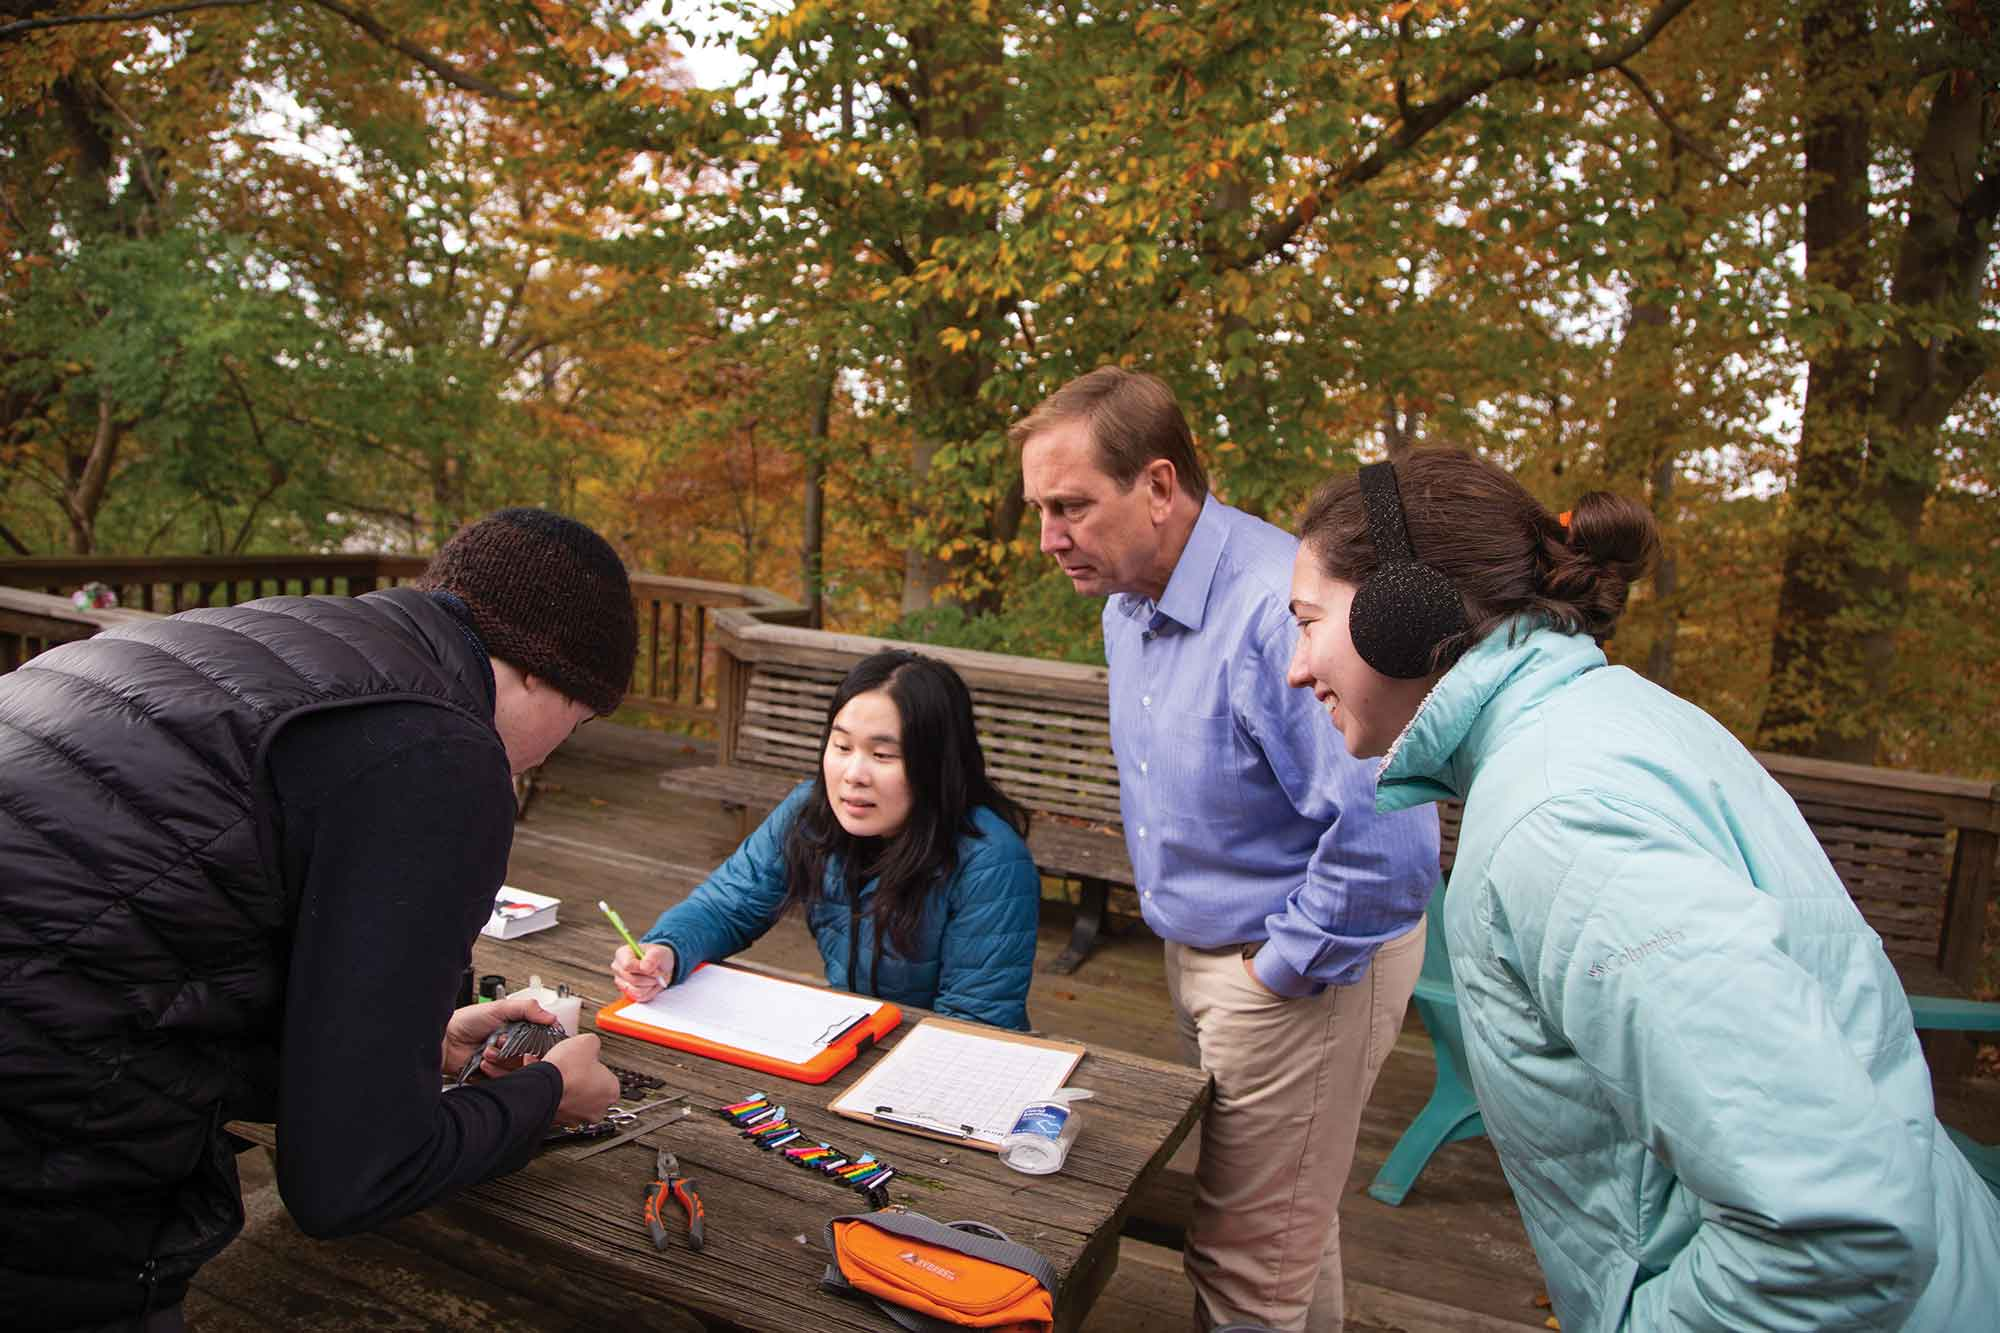 SCSU alumnus Peter Marra, '85, with students observing bird, writing in journal